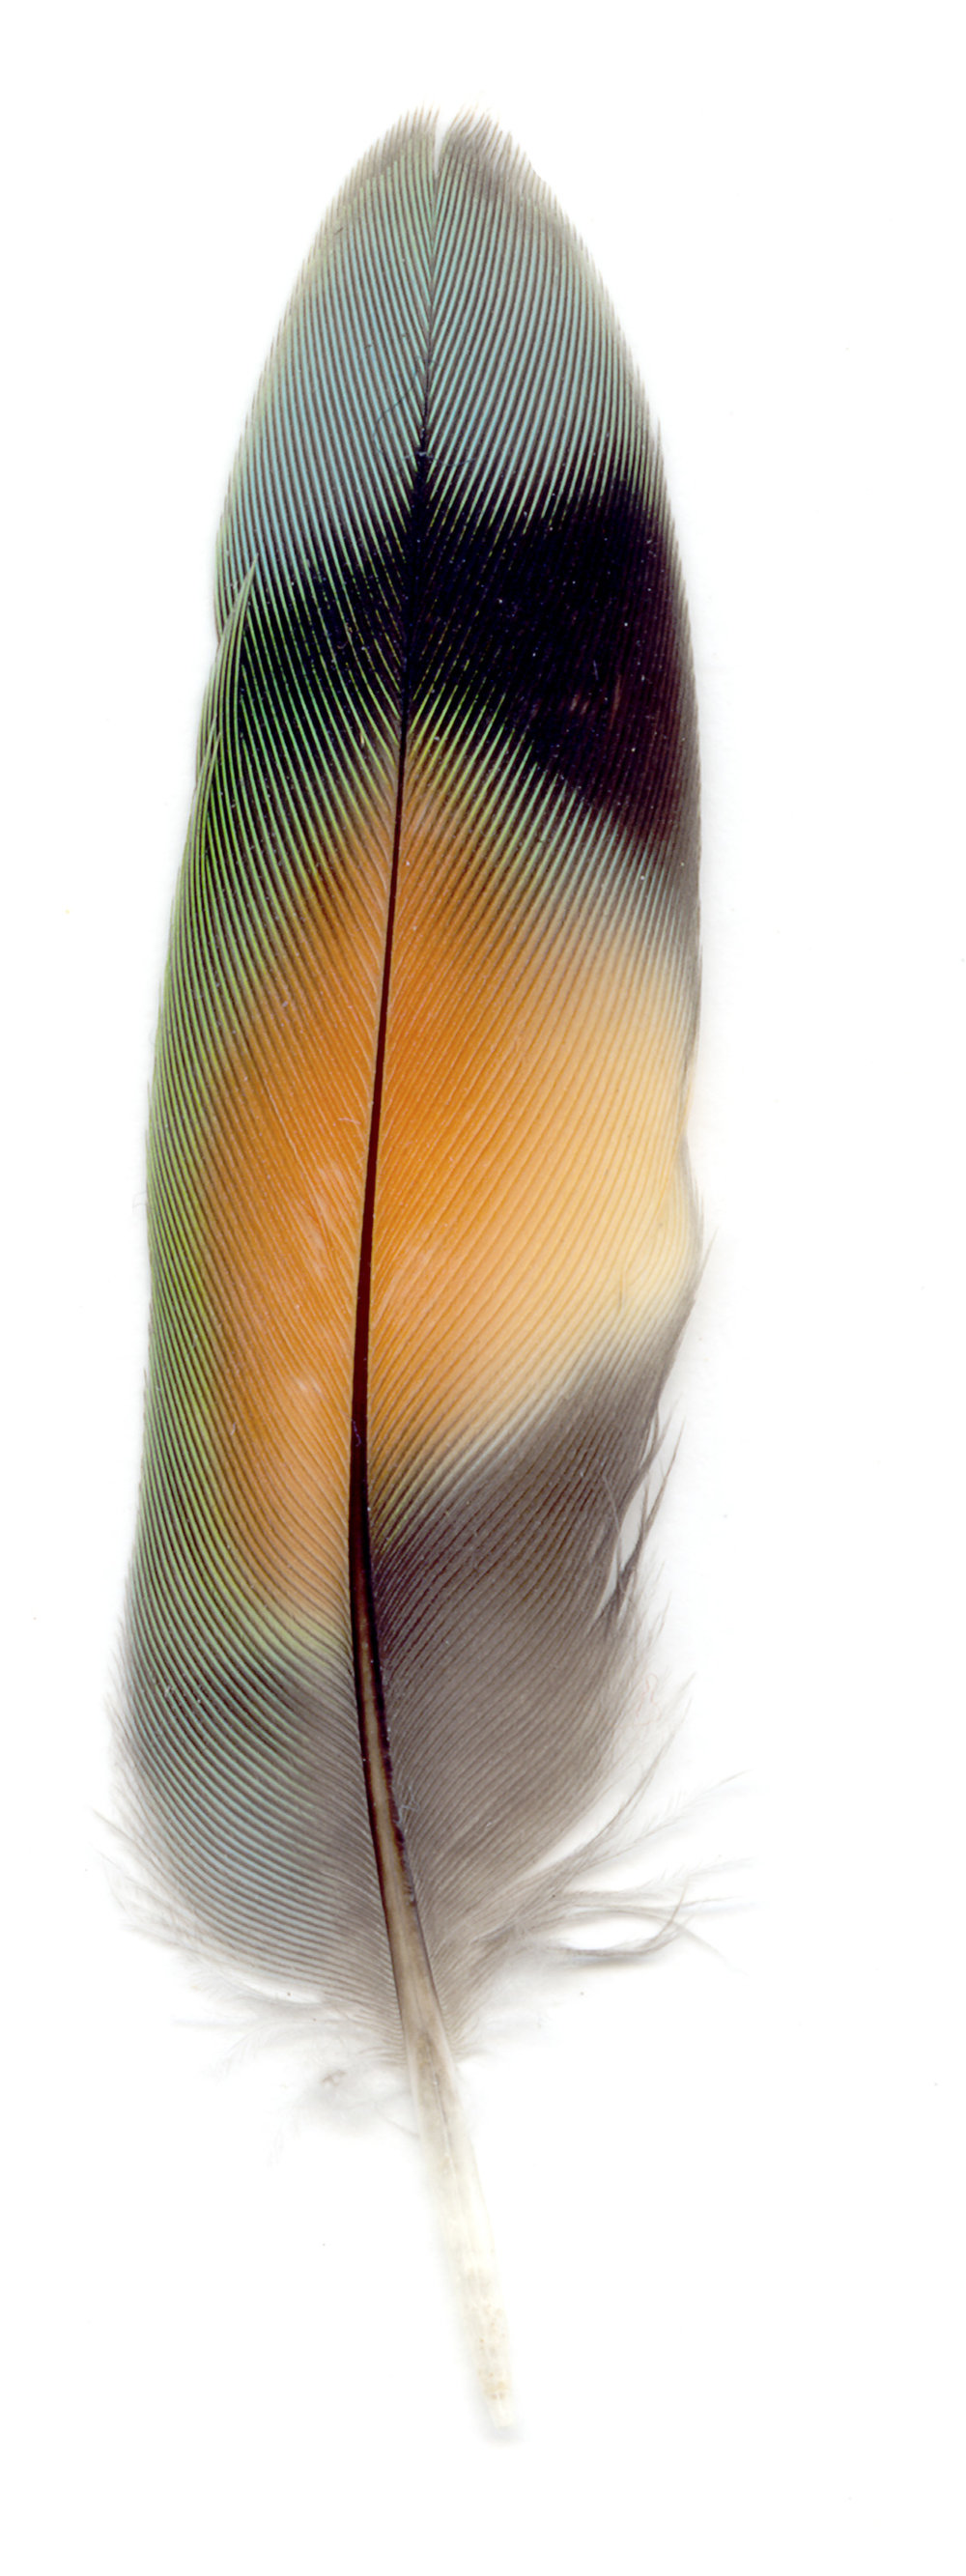 Collected Poems, Feathers, Love Bird_4,   13x39 inches, Ink Jet print on Washi paper, 2006, Unique print